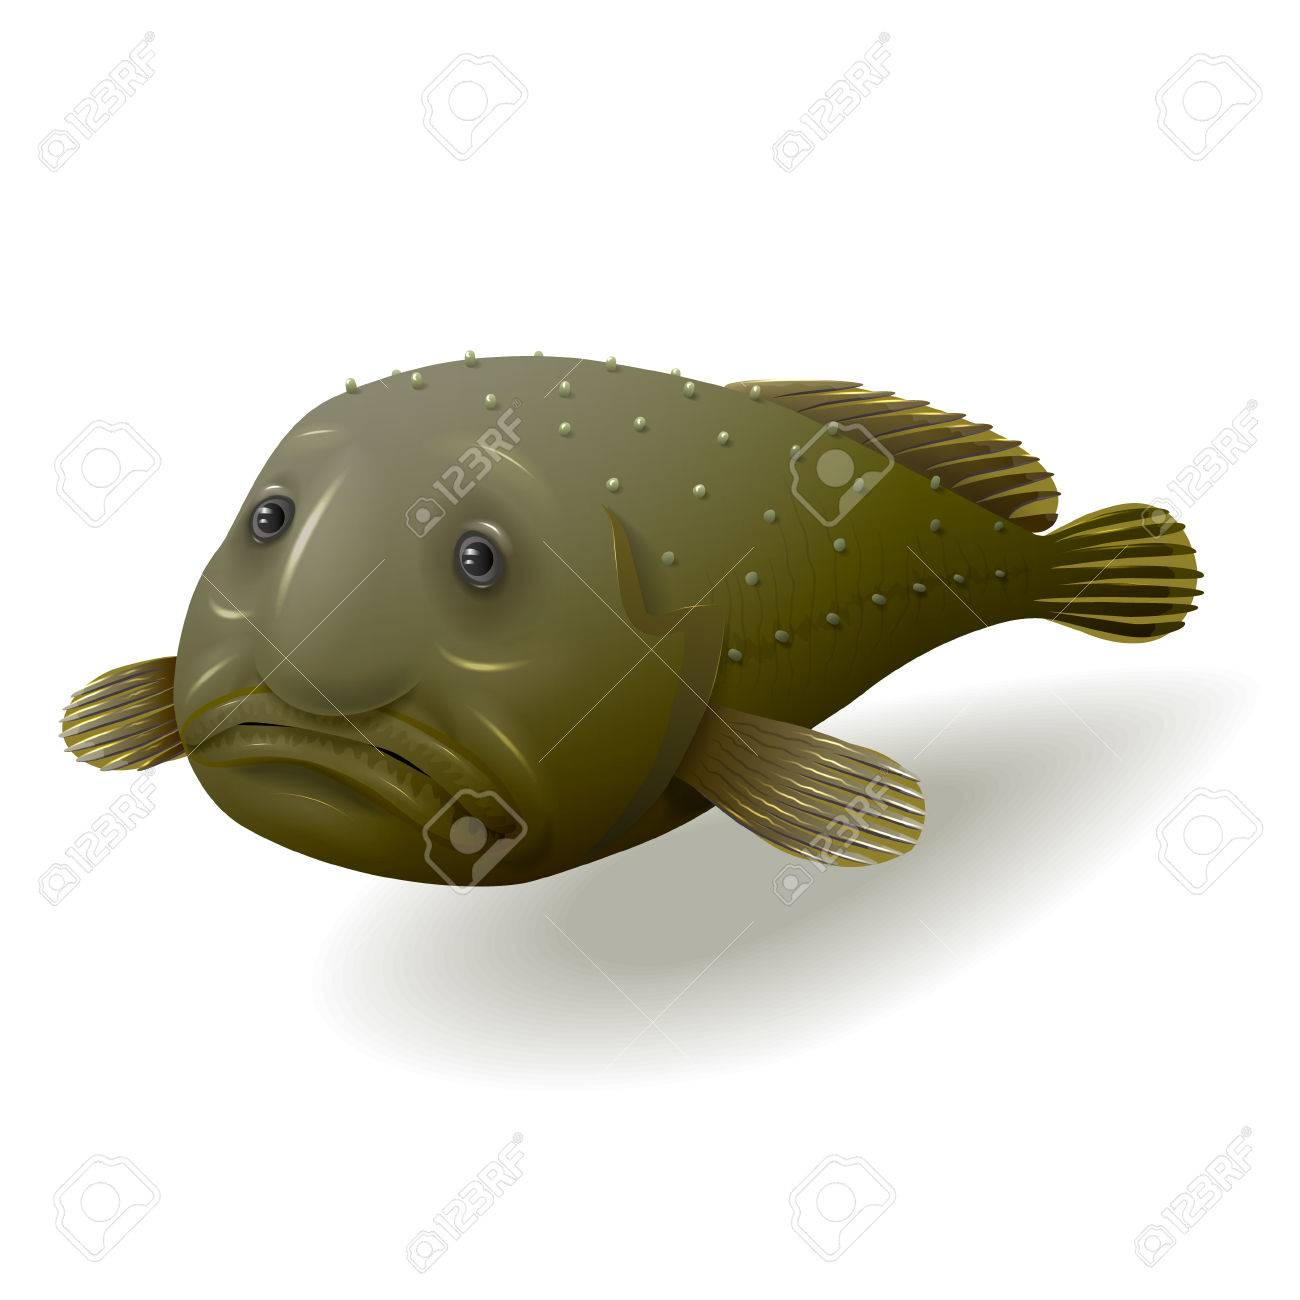 deep water blob fish isolated on white royalty free cliparts